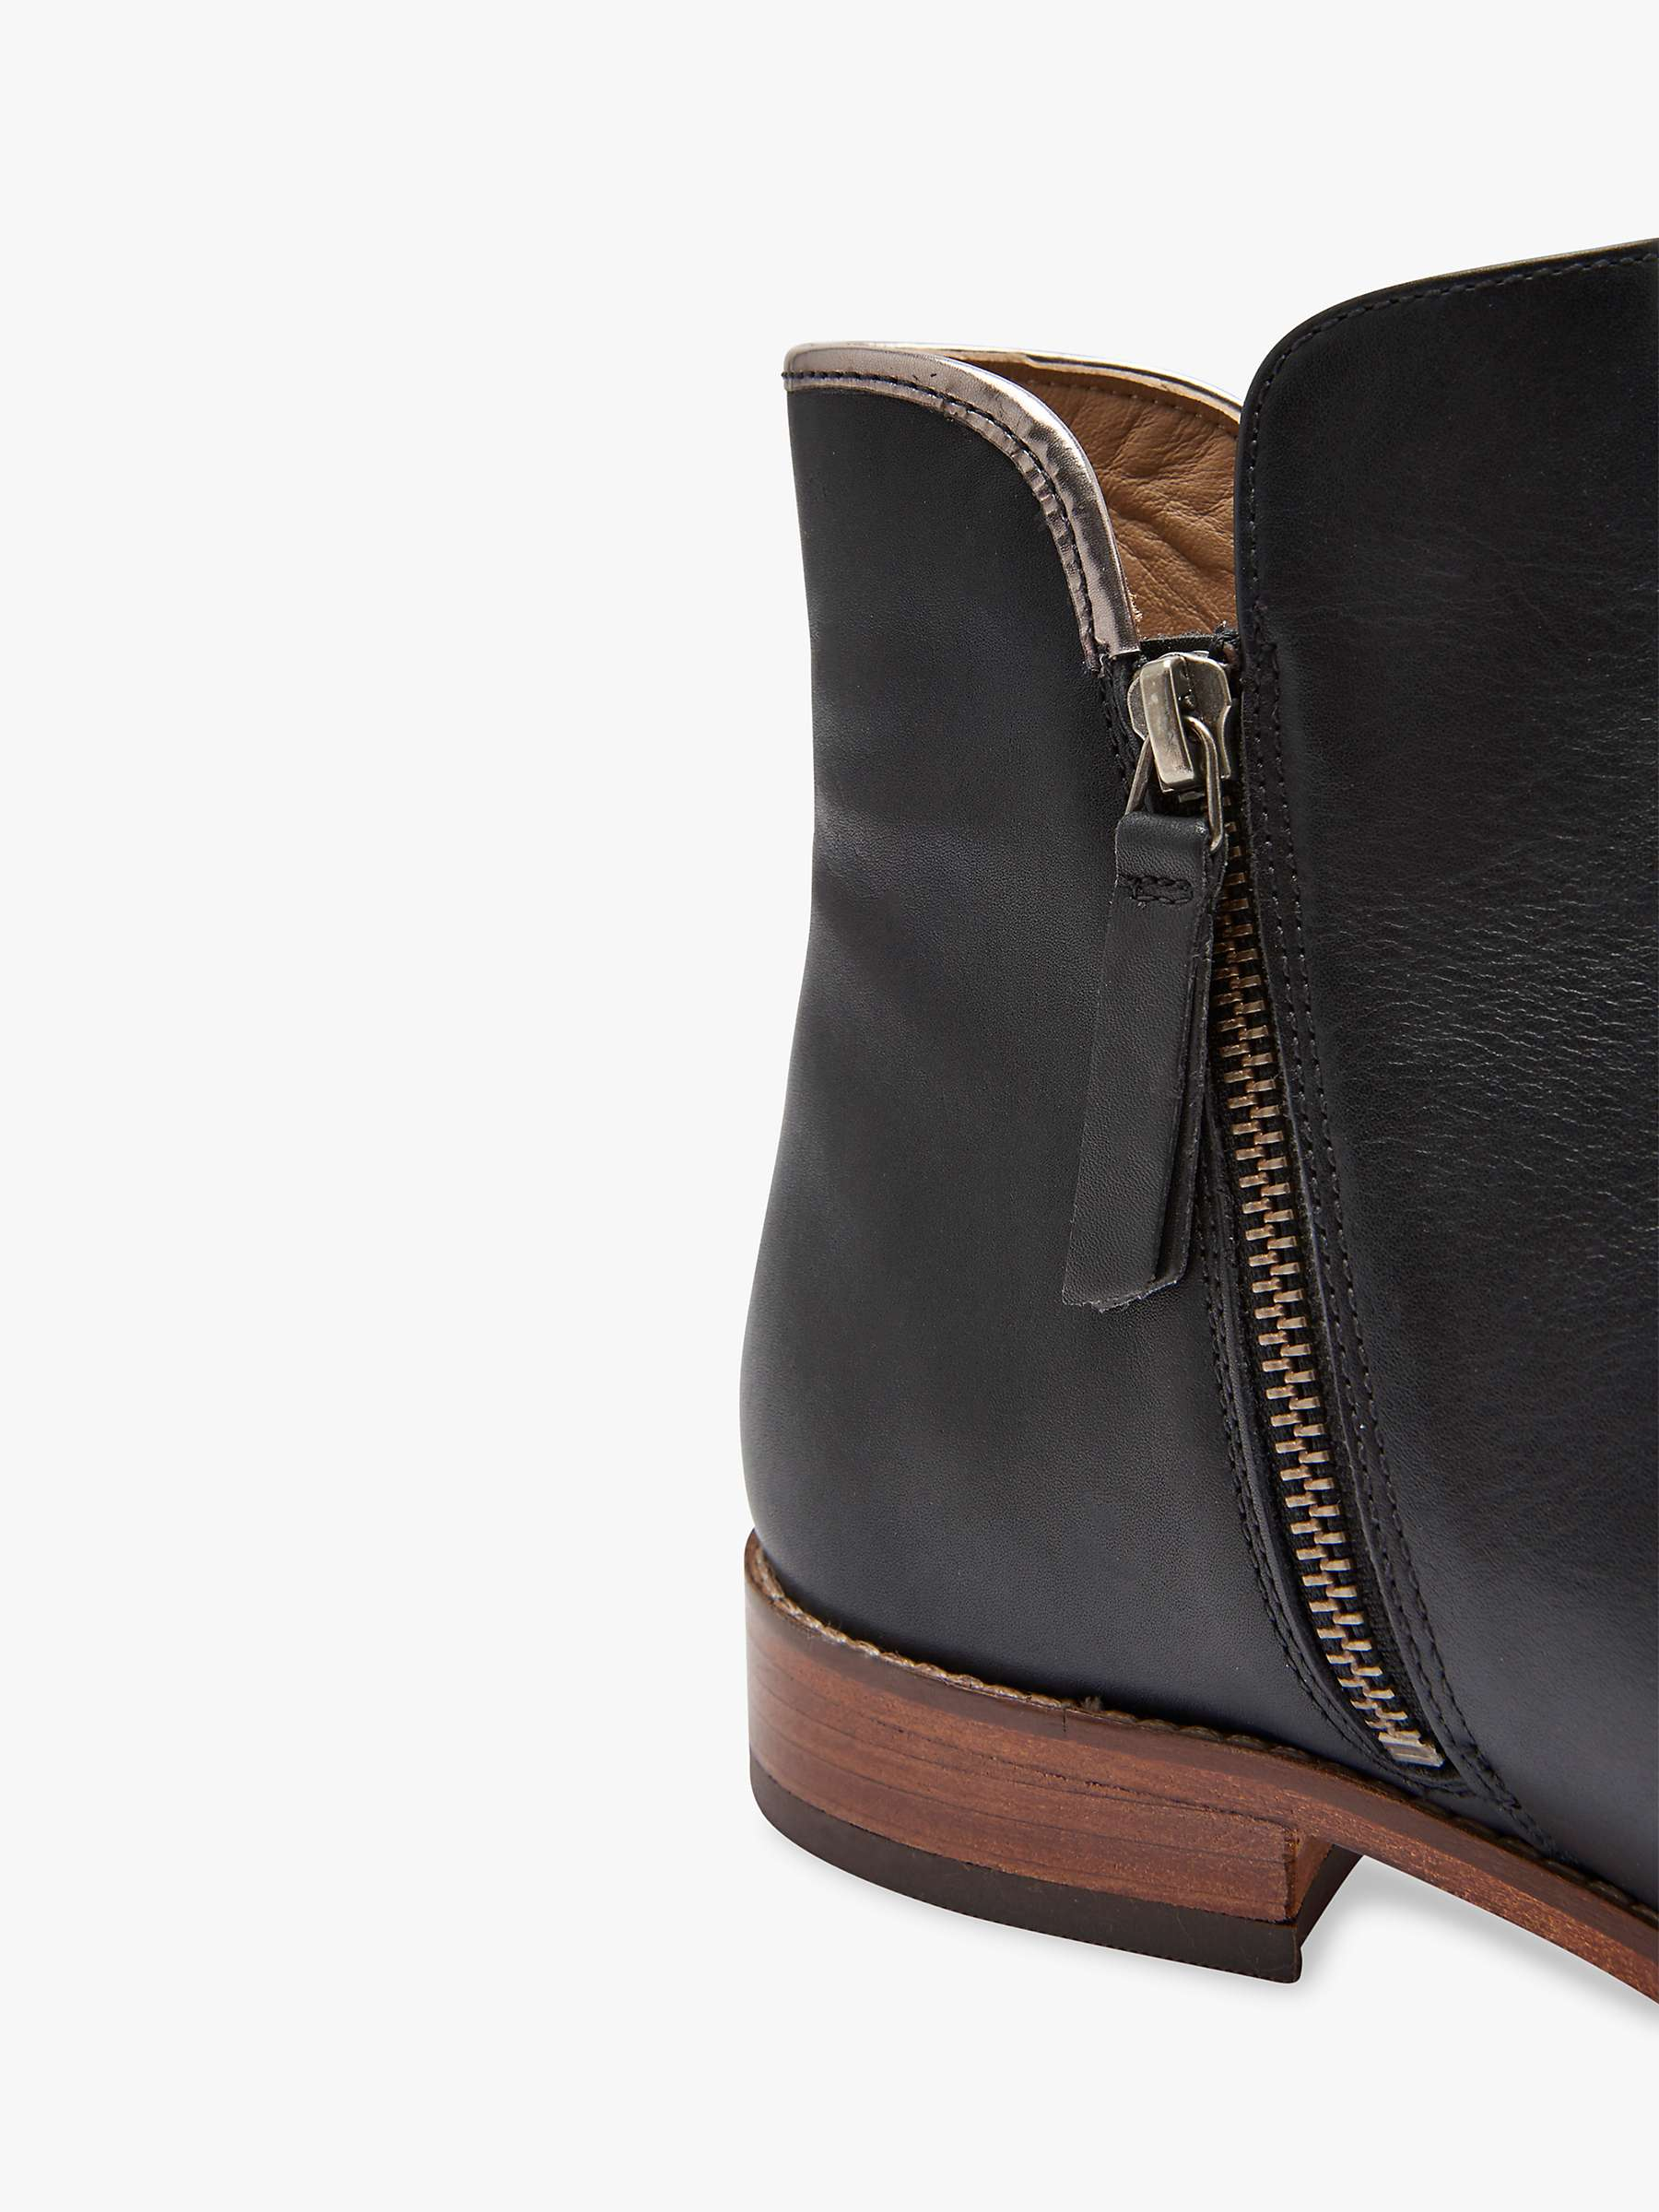 shopping new release fashion styles Joules Westminster Block Heel Ankle Boots, Black Leather